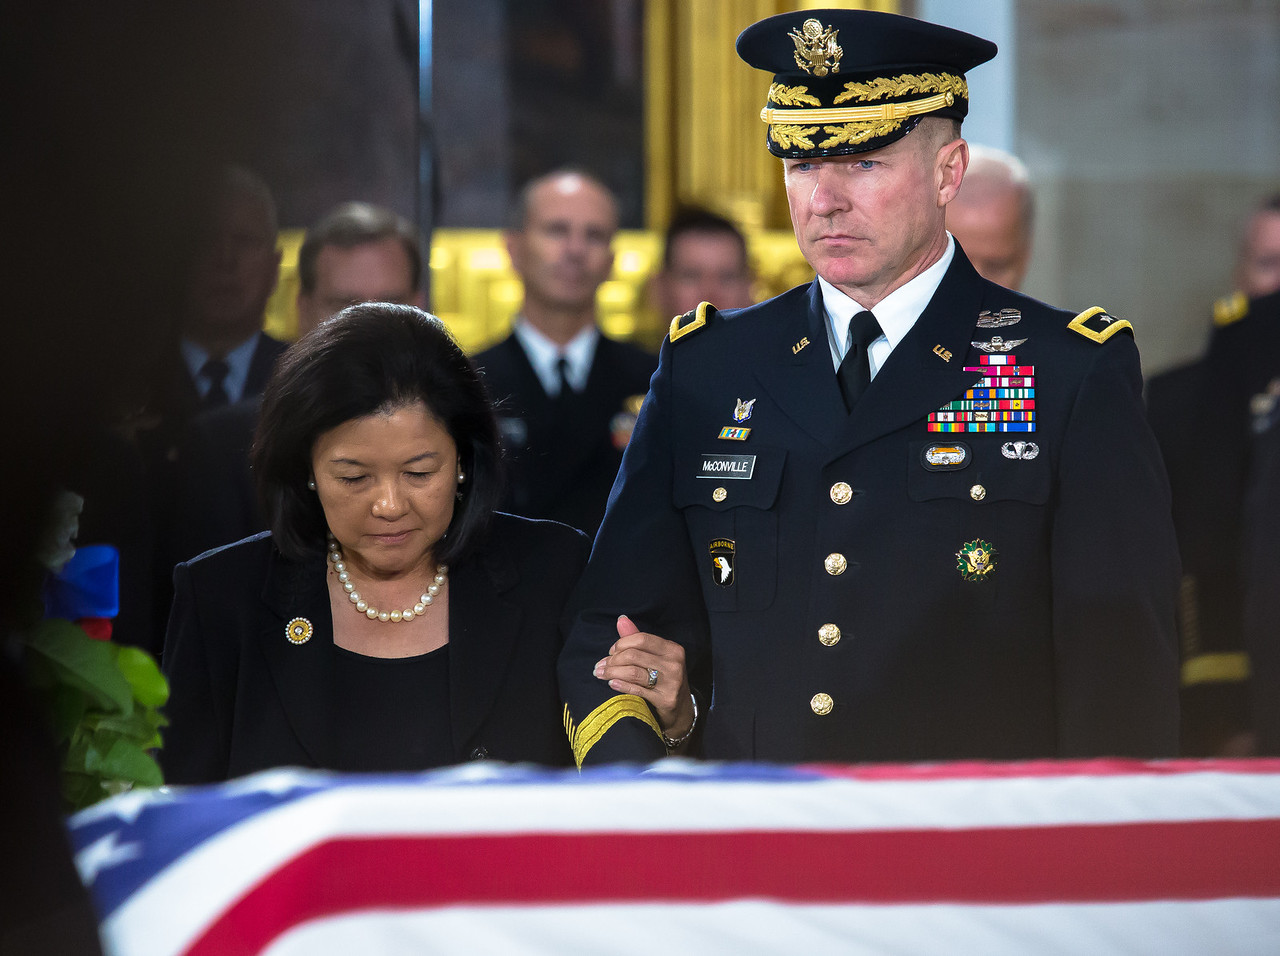 Irene Inouye, widow of the late Sen. Dan Inouye is escorted by Army Major General James McConville as Senator Inouye lies in state in the U.S. Capitol Rotunda in Washington D.C. on Thursday, Dec. 20, 2012. There, his colleagues and members of the public will pay their respects to the Senate's second-longest serving member. The Democrat from Hawaii was a Medal of Honor recipient for valor in World War II. He died Monday from respiratory ailments at age 88. Lying in state is an honor typically reserved for presidents, bestowed only 31 times since the 1800s. According to tradition, Inouye's casket sat underneath the Capitol dome, atop the Lincoln catafalque, the platform built in 1865 to support Abraham Lincoln's casket when that president's body lay in state.  (Photo by Jeff Malet)